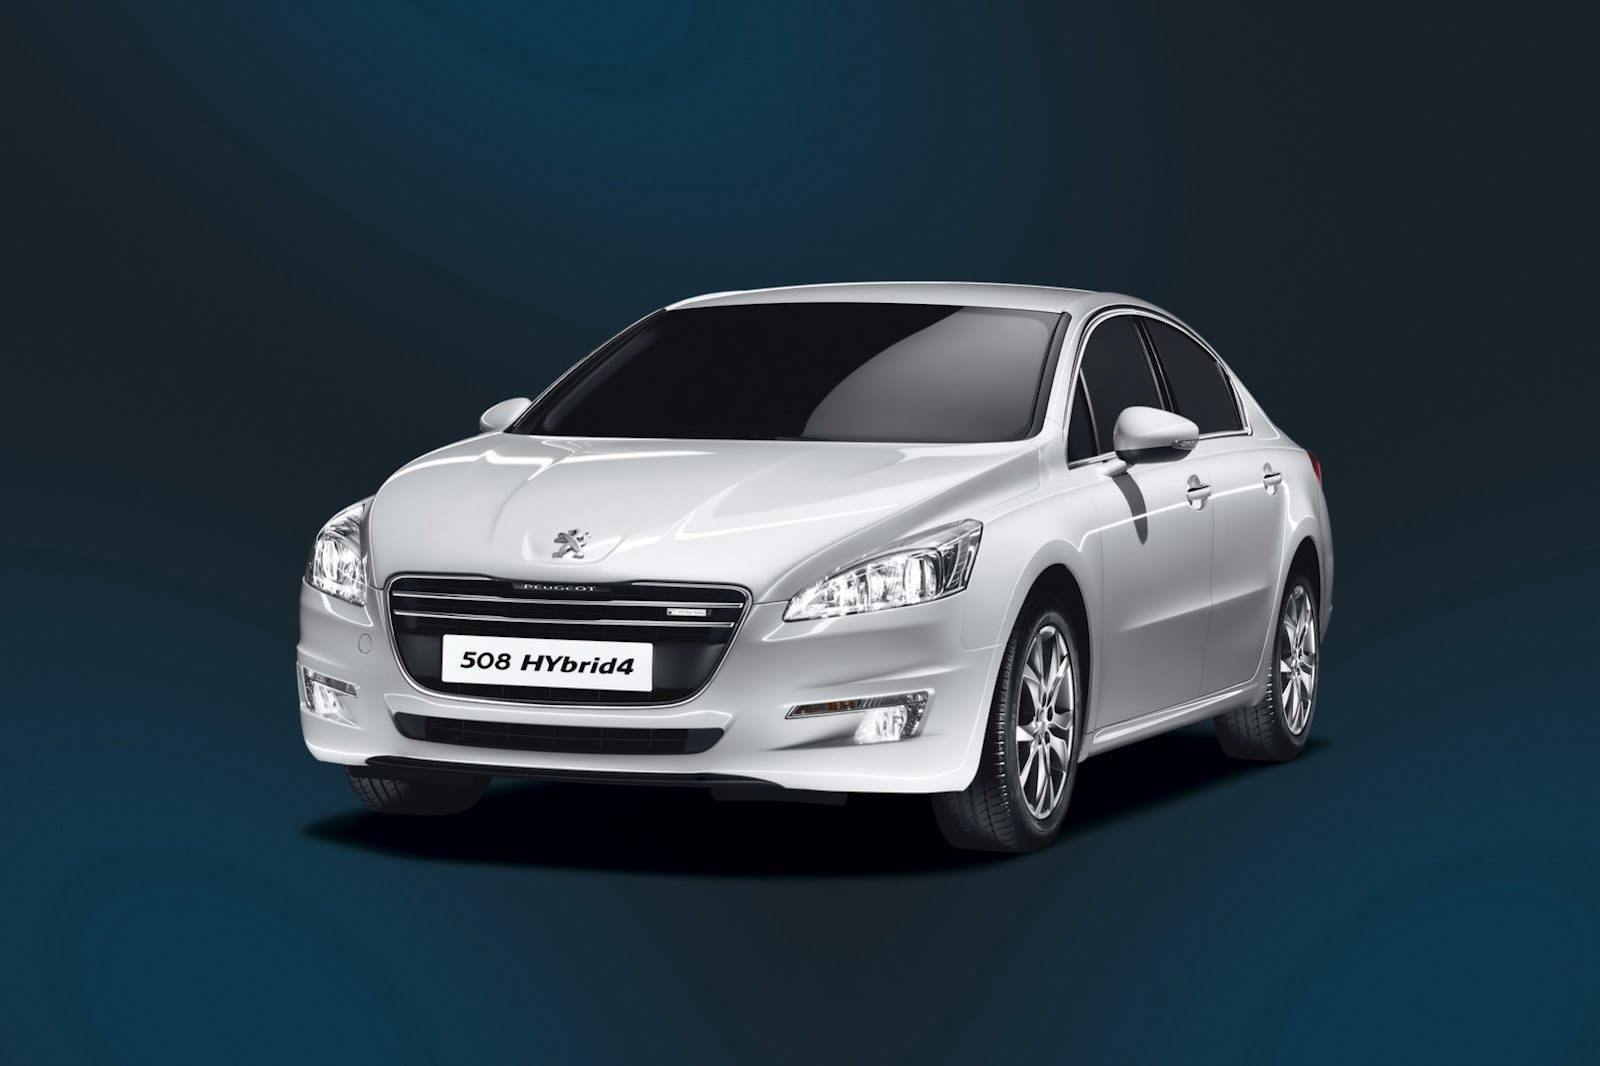 peugeot 508 diesel electric hybrid4 sedan launched autoevolution. Black Bedroom Furniture Sets. Home Design Ideas